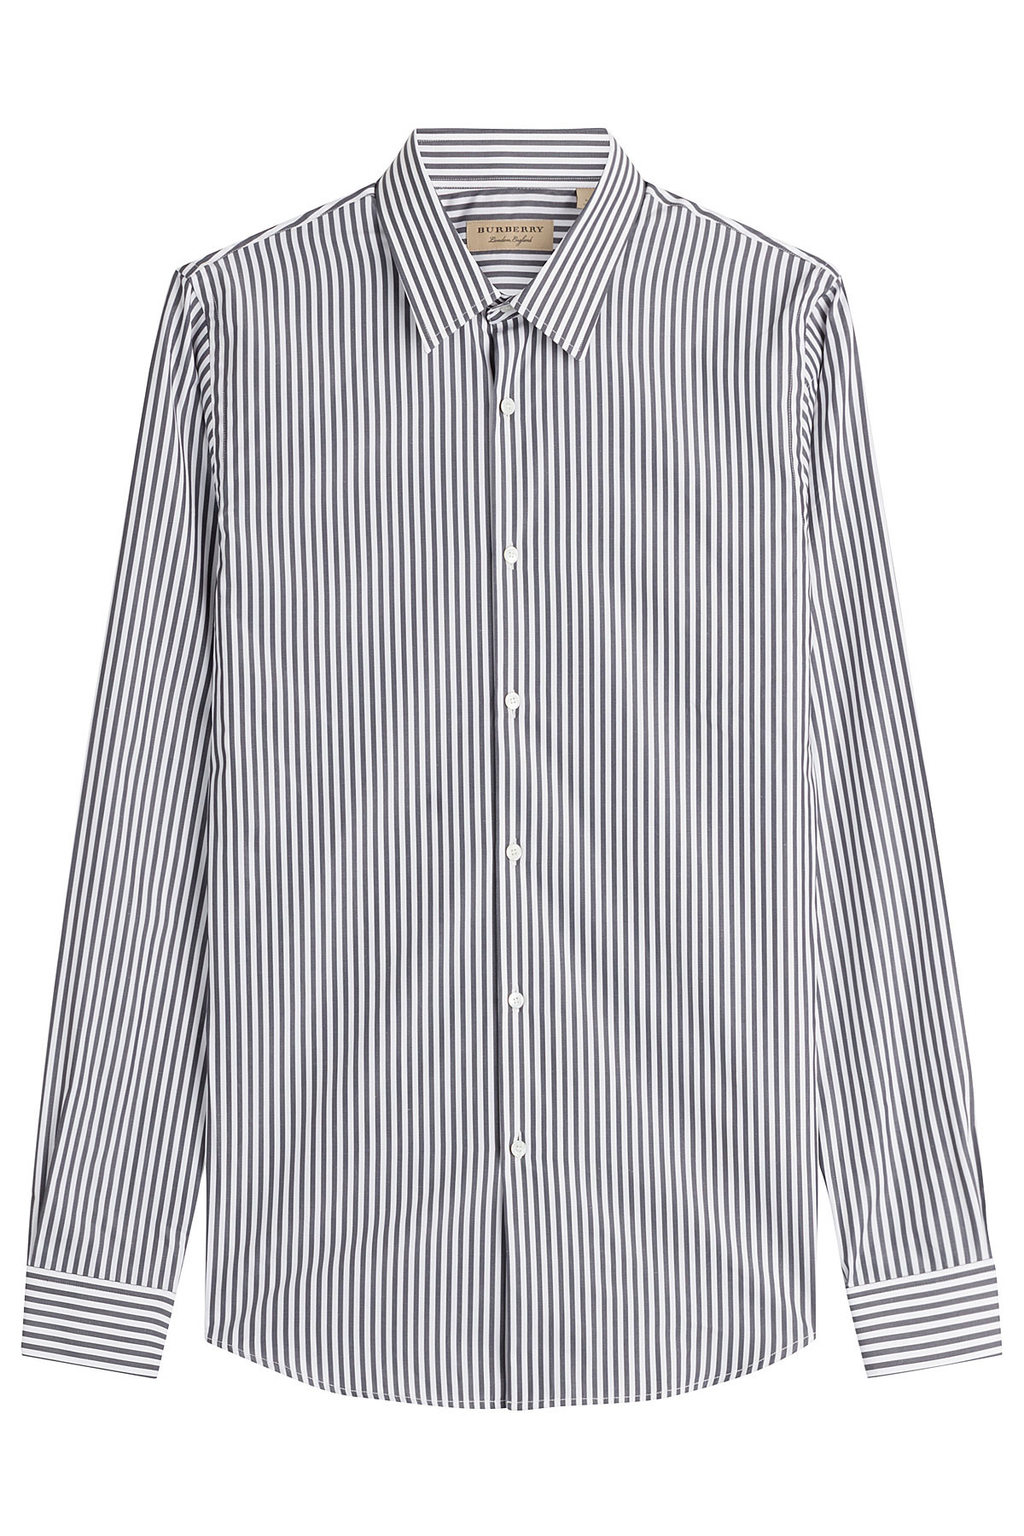 Seaford Striped Cotton Shirt Stripes - neckline: shirt collar/peter pan/zip with opening; pattern: vertical stripes; style: shirt; secondary colour: white; predominant colour: black; occasions: work; length: standard; fibres: cotton - 100%; fit: body skimming; sleeve length: long sleeve; sleeve style: standard; texture group: cotton feel fabrics; pattern type: fabric; multicoloured: multicoloured; season: a/w 2016